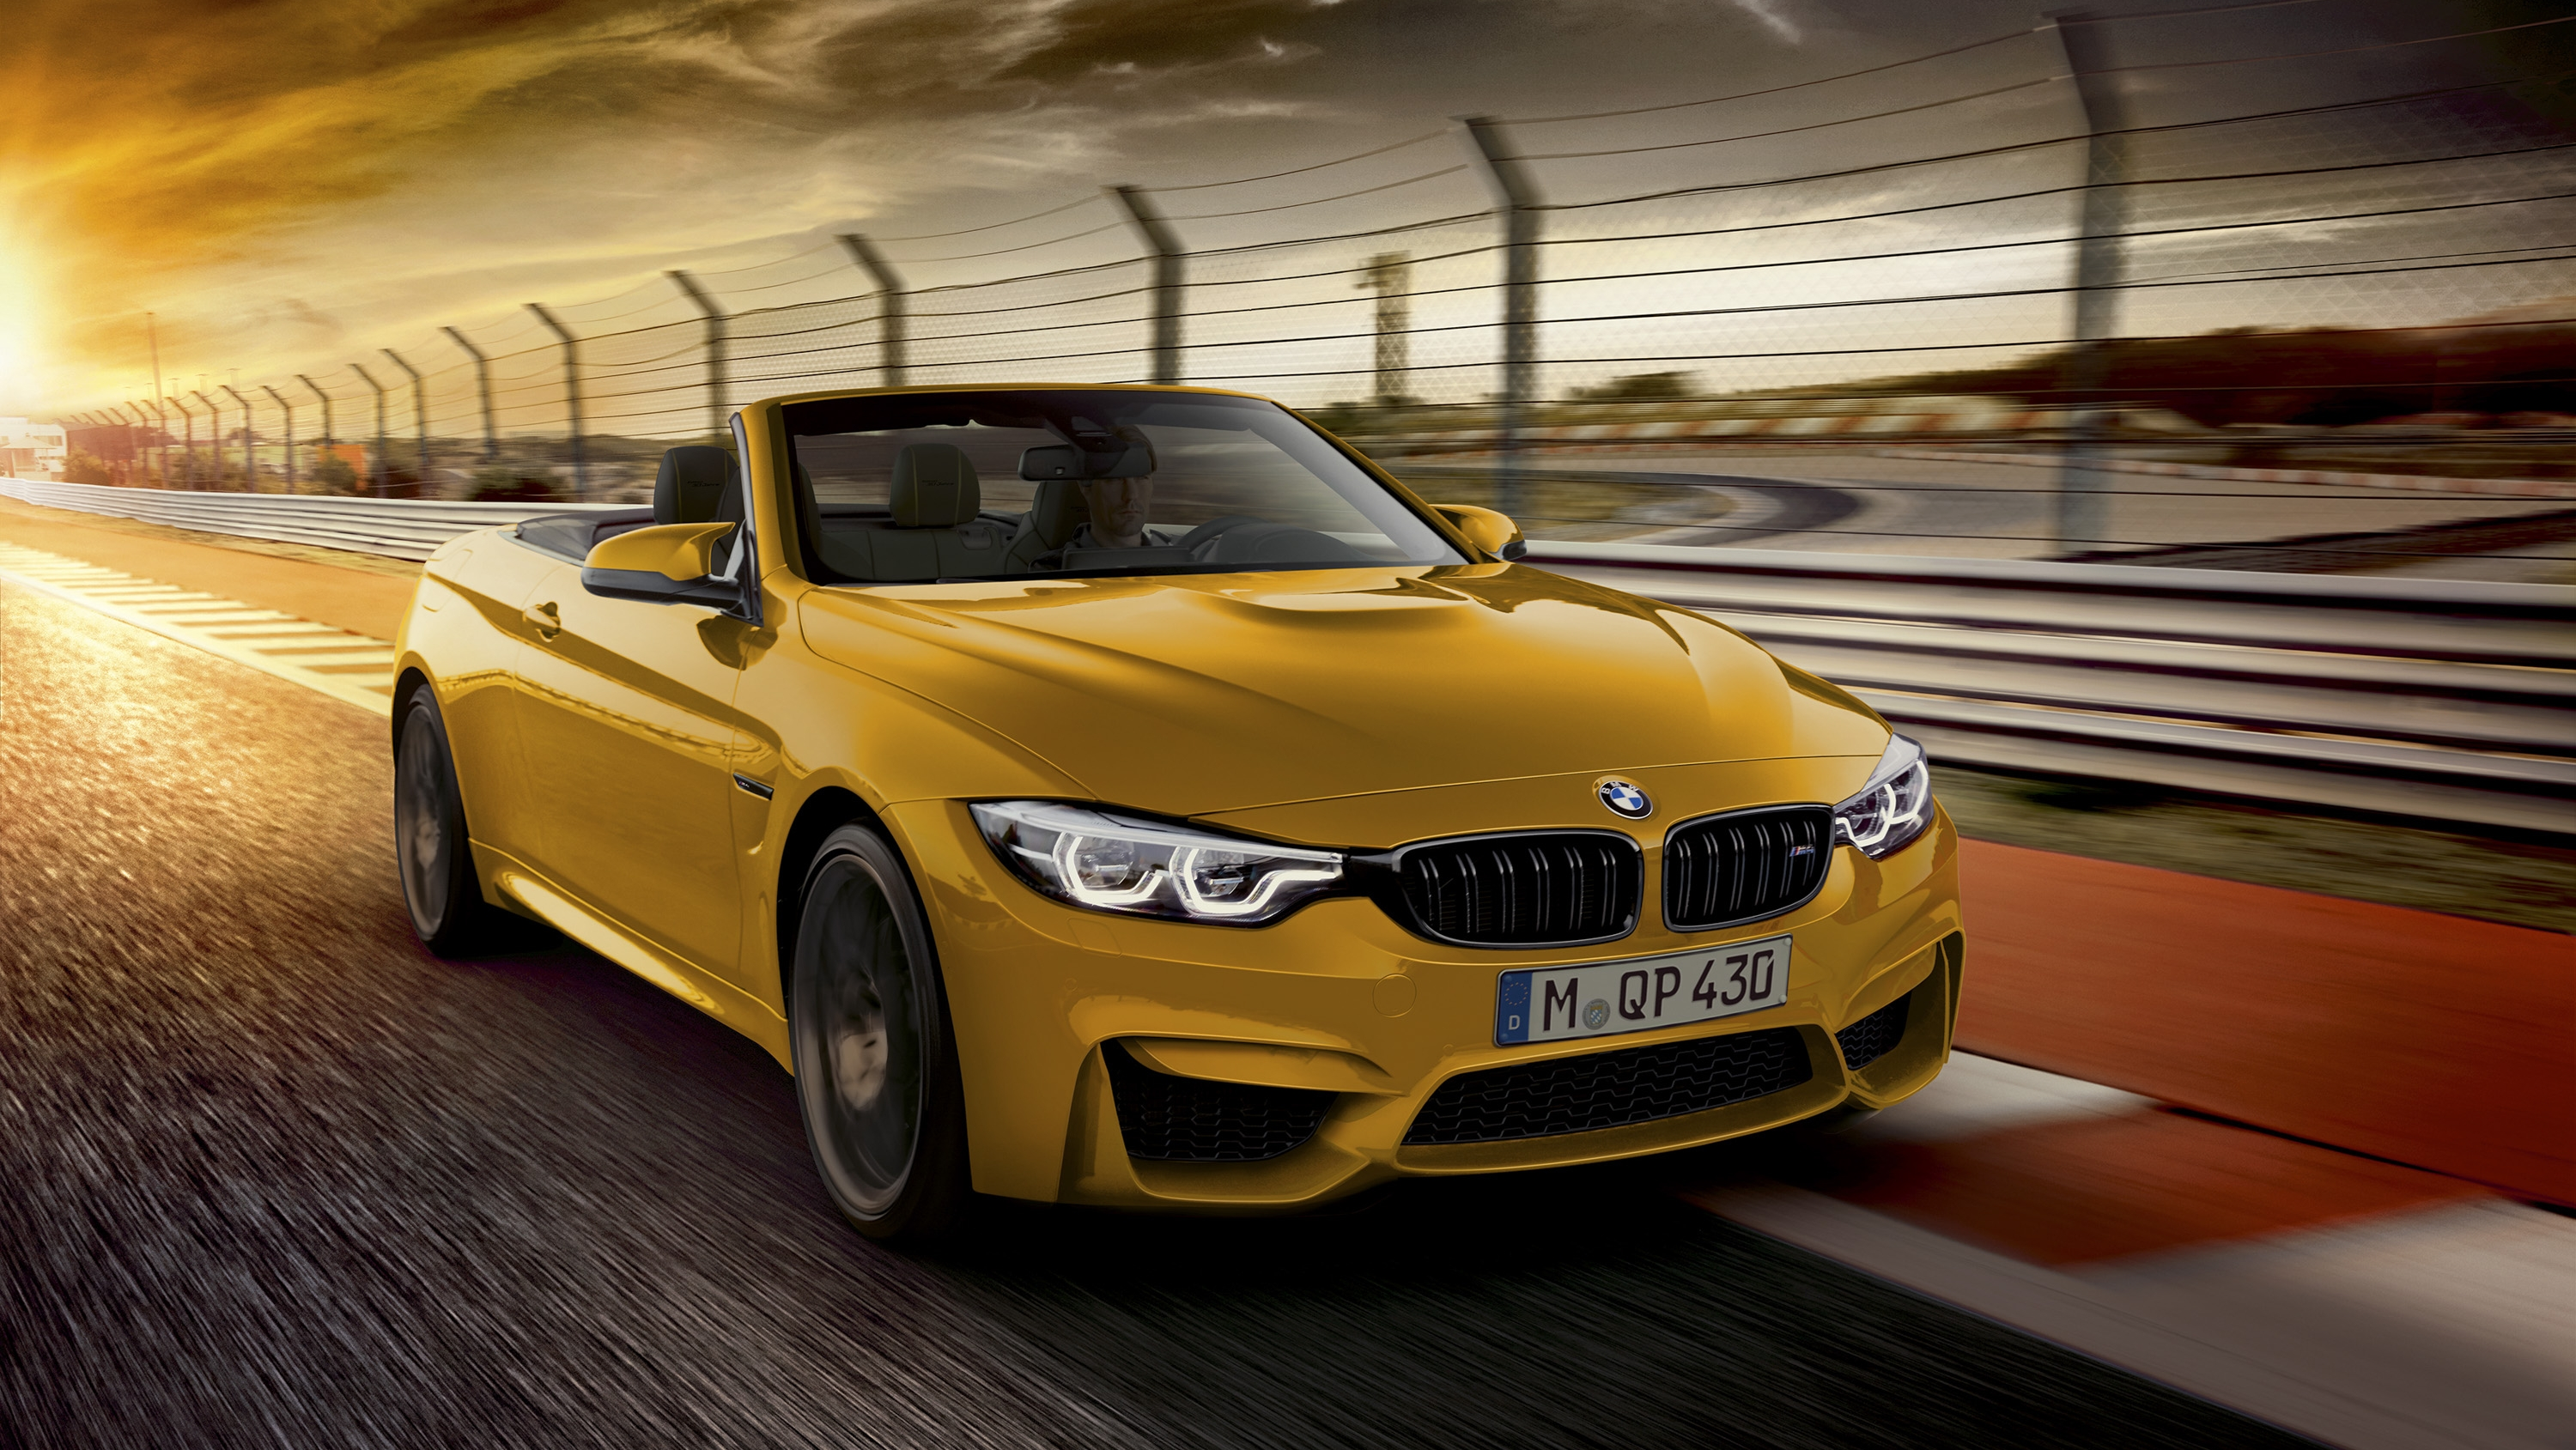 2018 Bmw M4 Convertible Edition 30 Jahre Pictures Photos